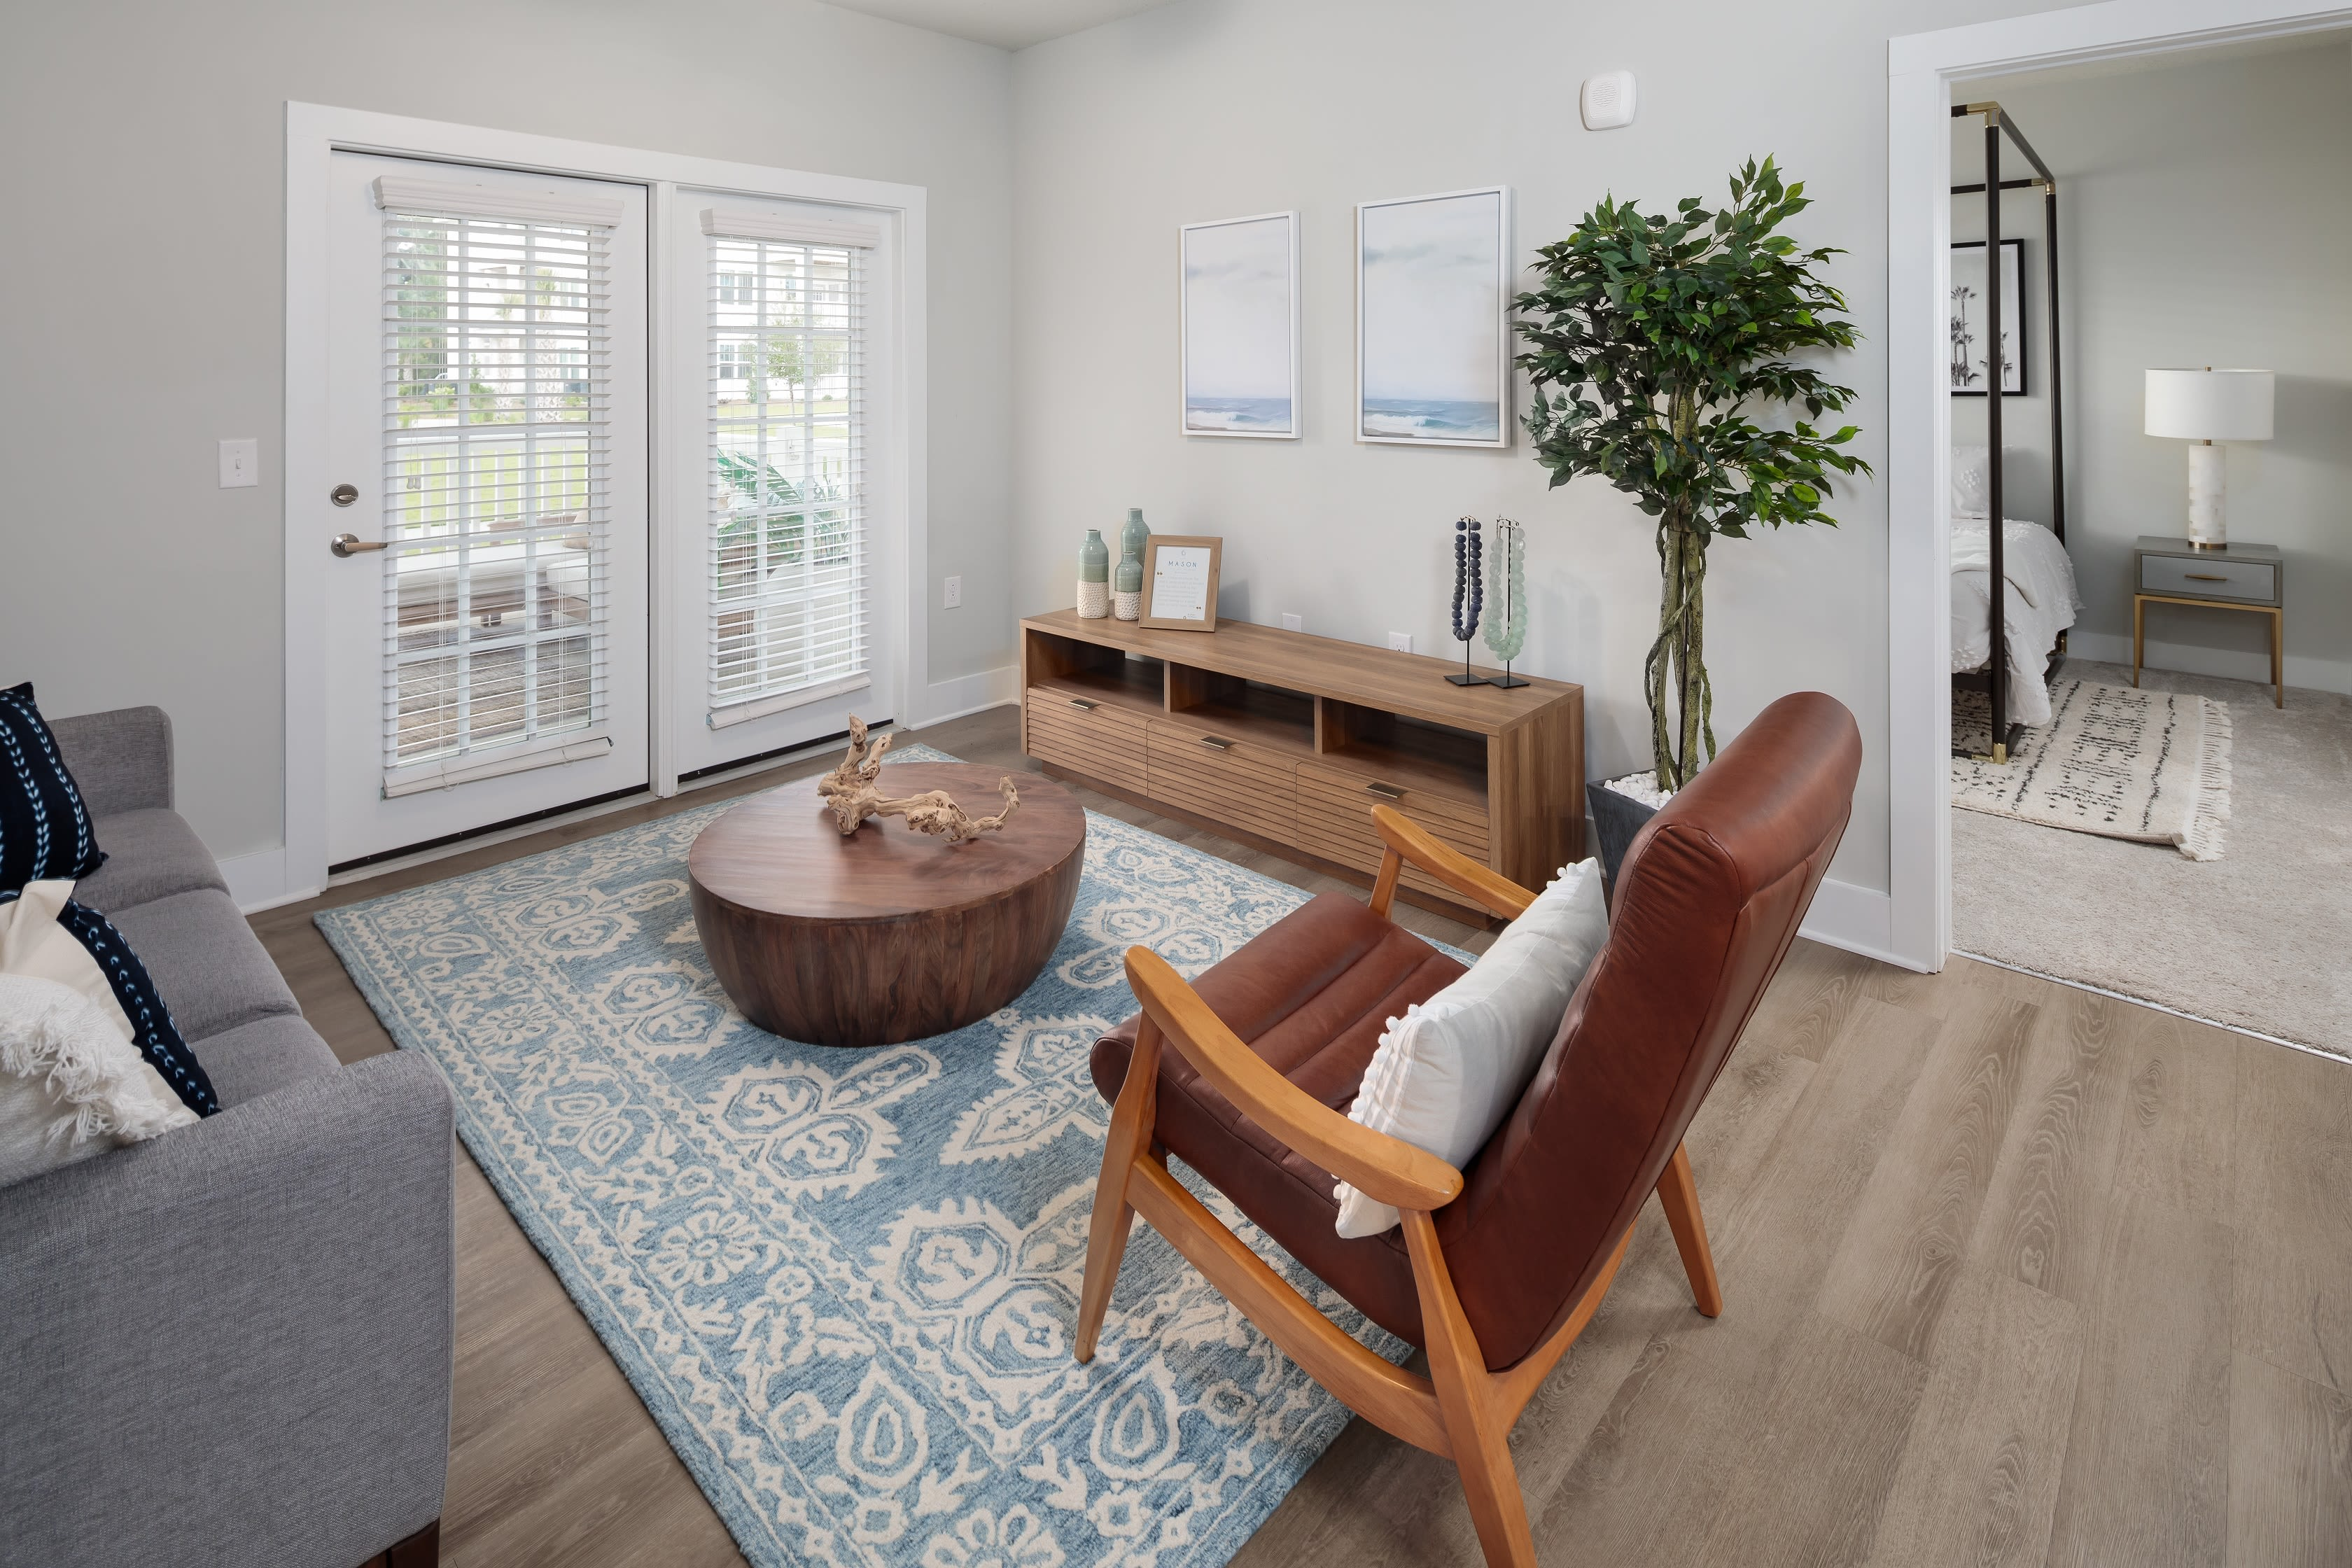 Spacious living room a in a model home at The Mason in Ladson, South Carolina